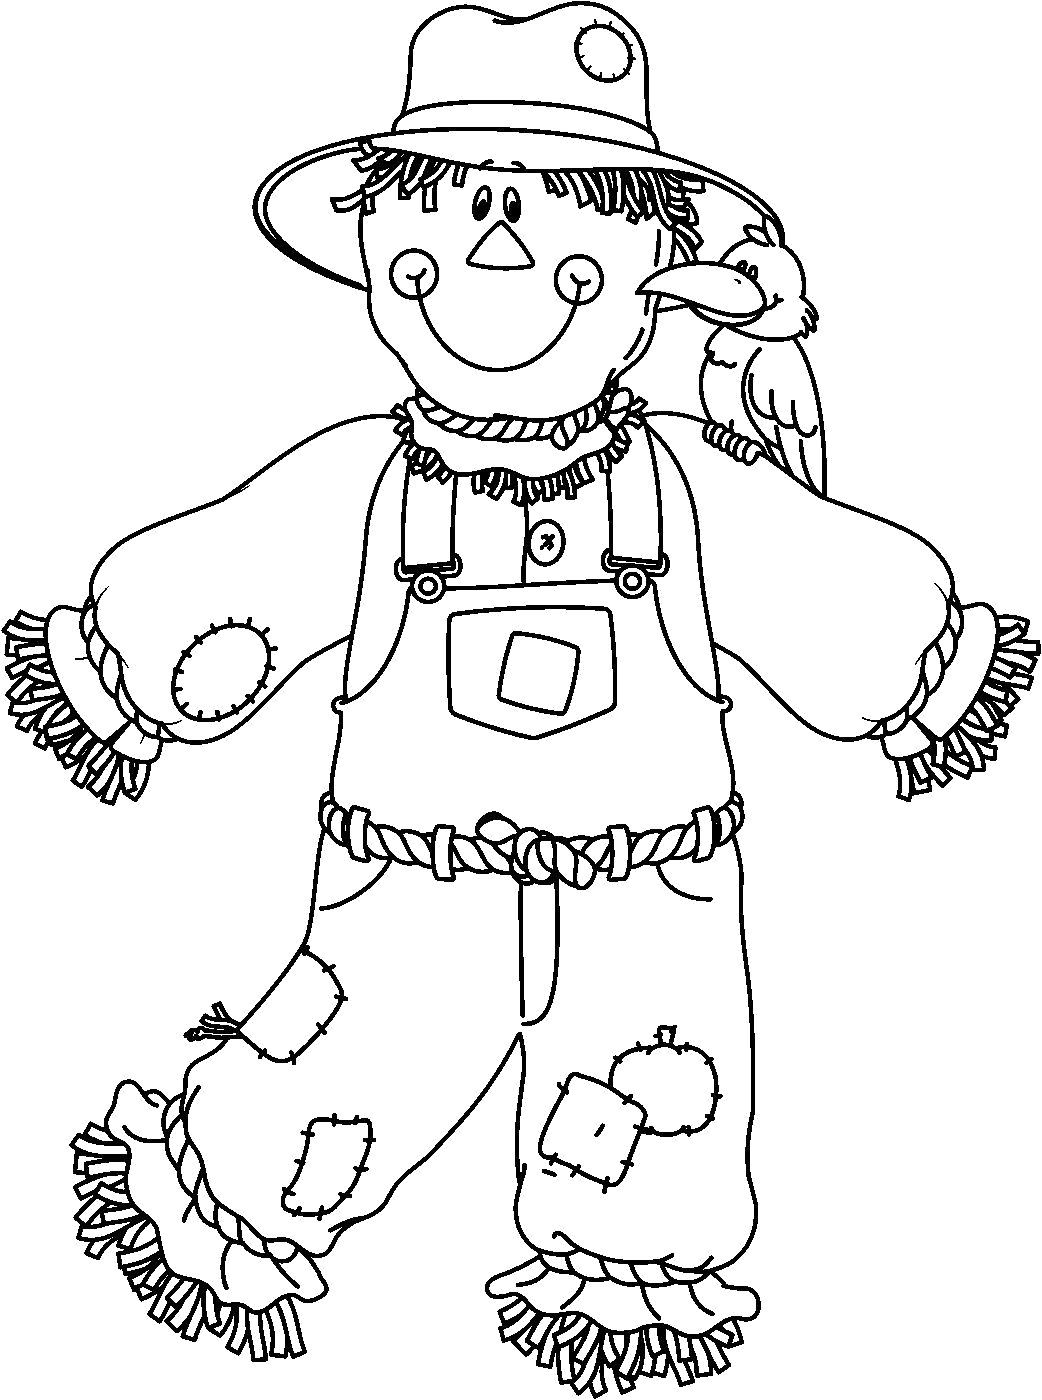 22+ Beautiful Image of Scarecrow Coloring Page